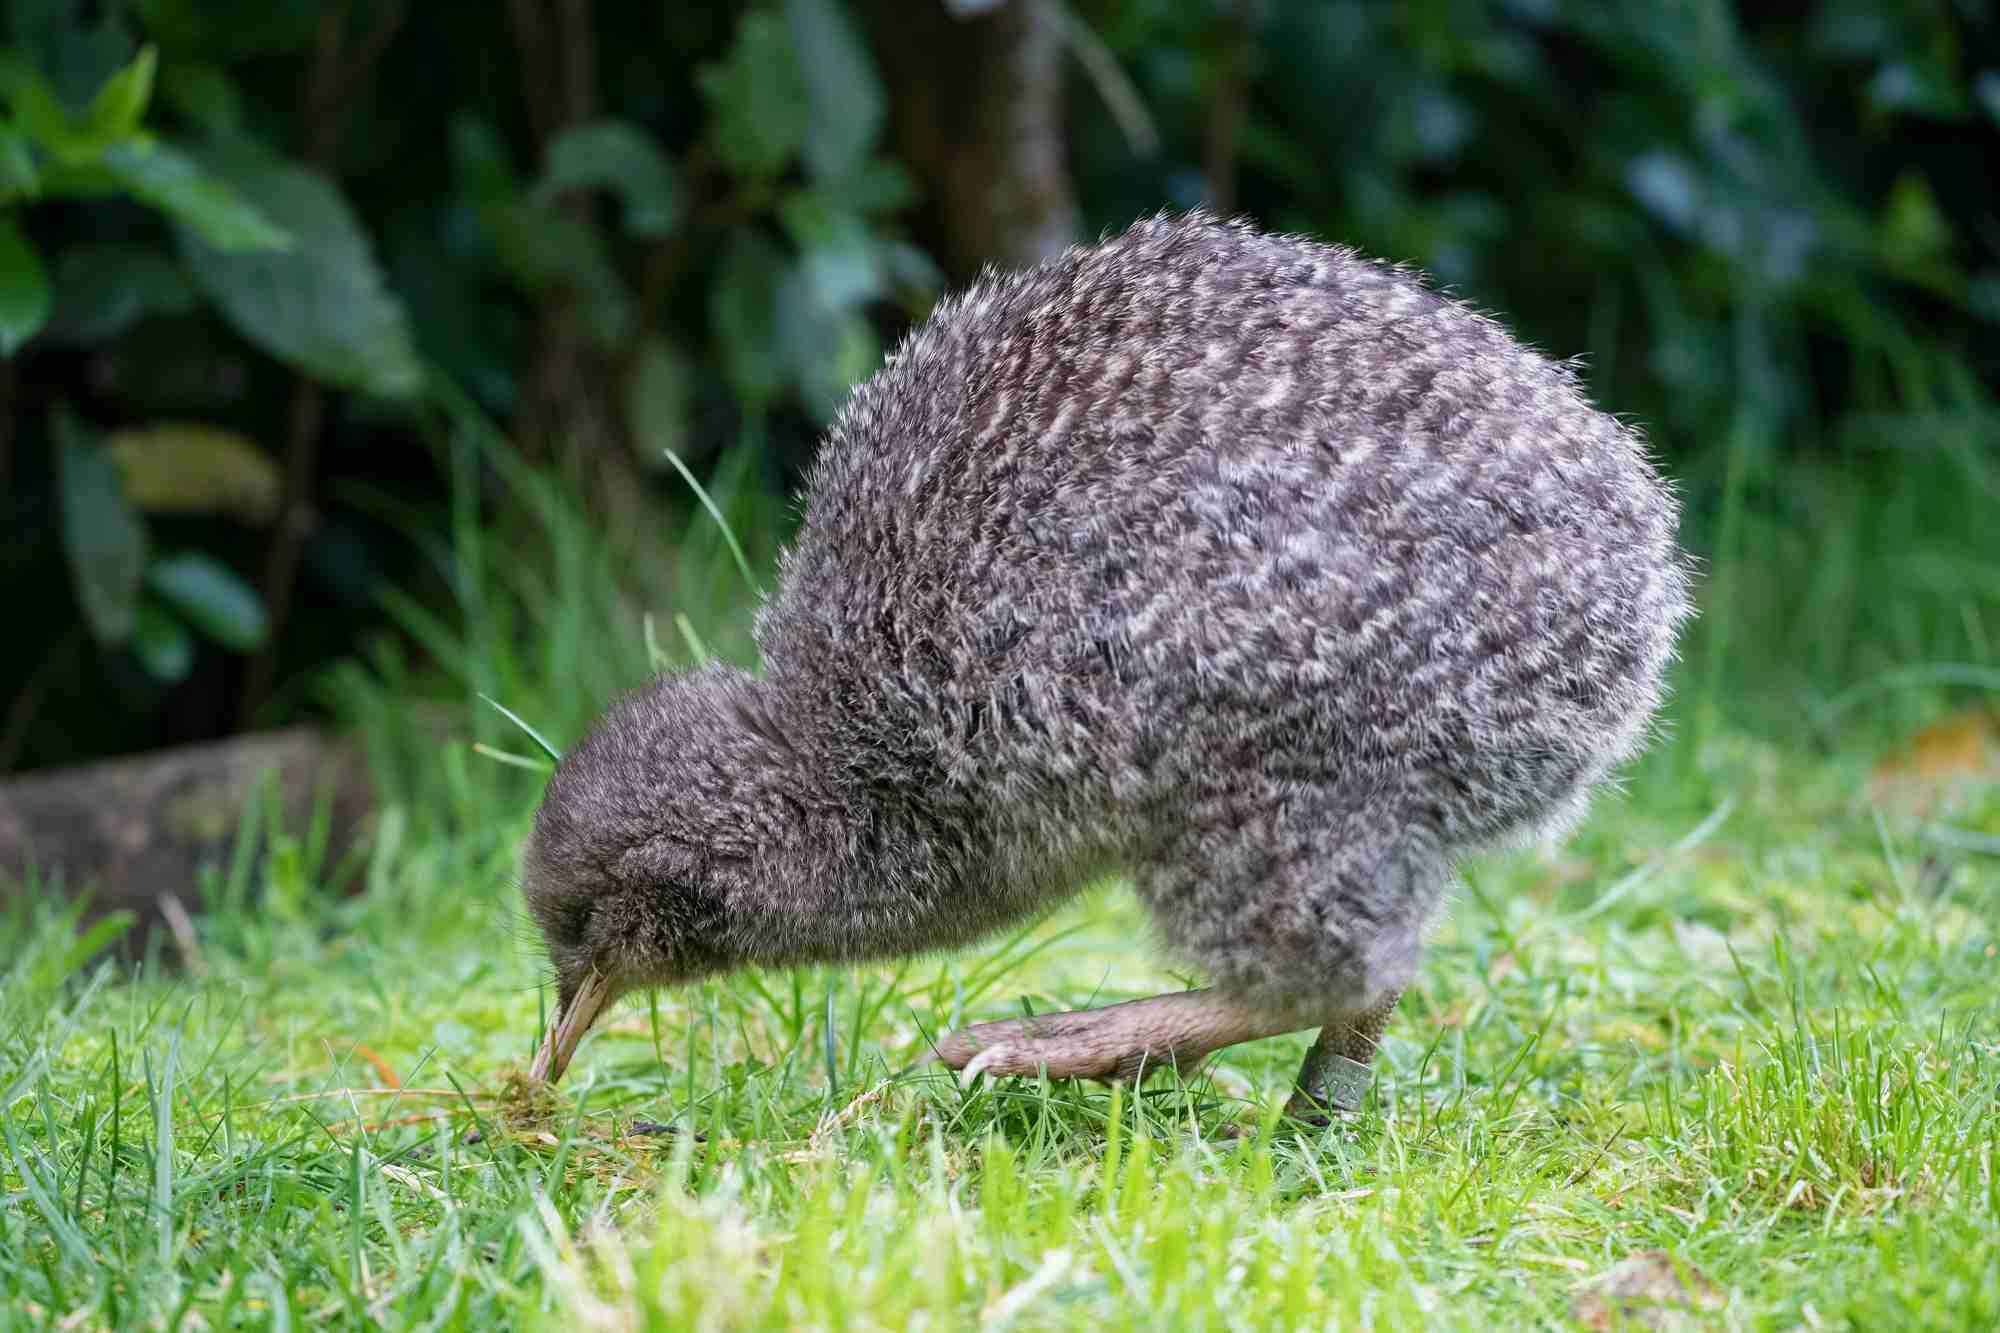 Little spotted kiwi standing in grass